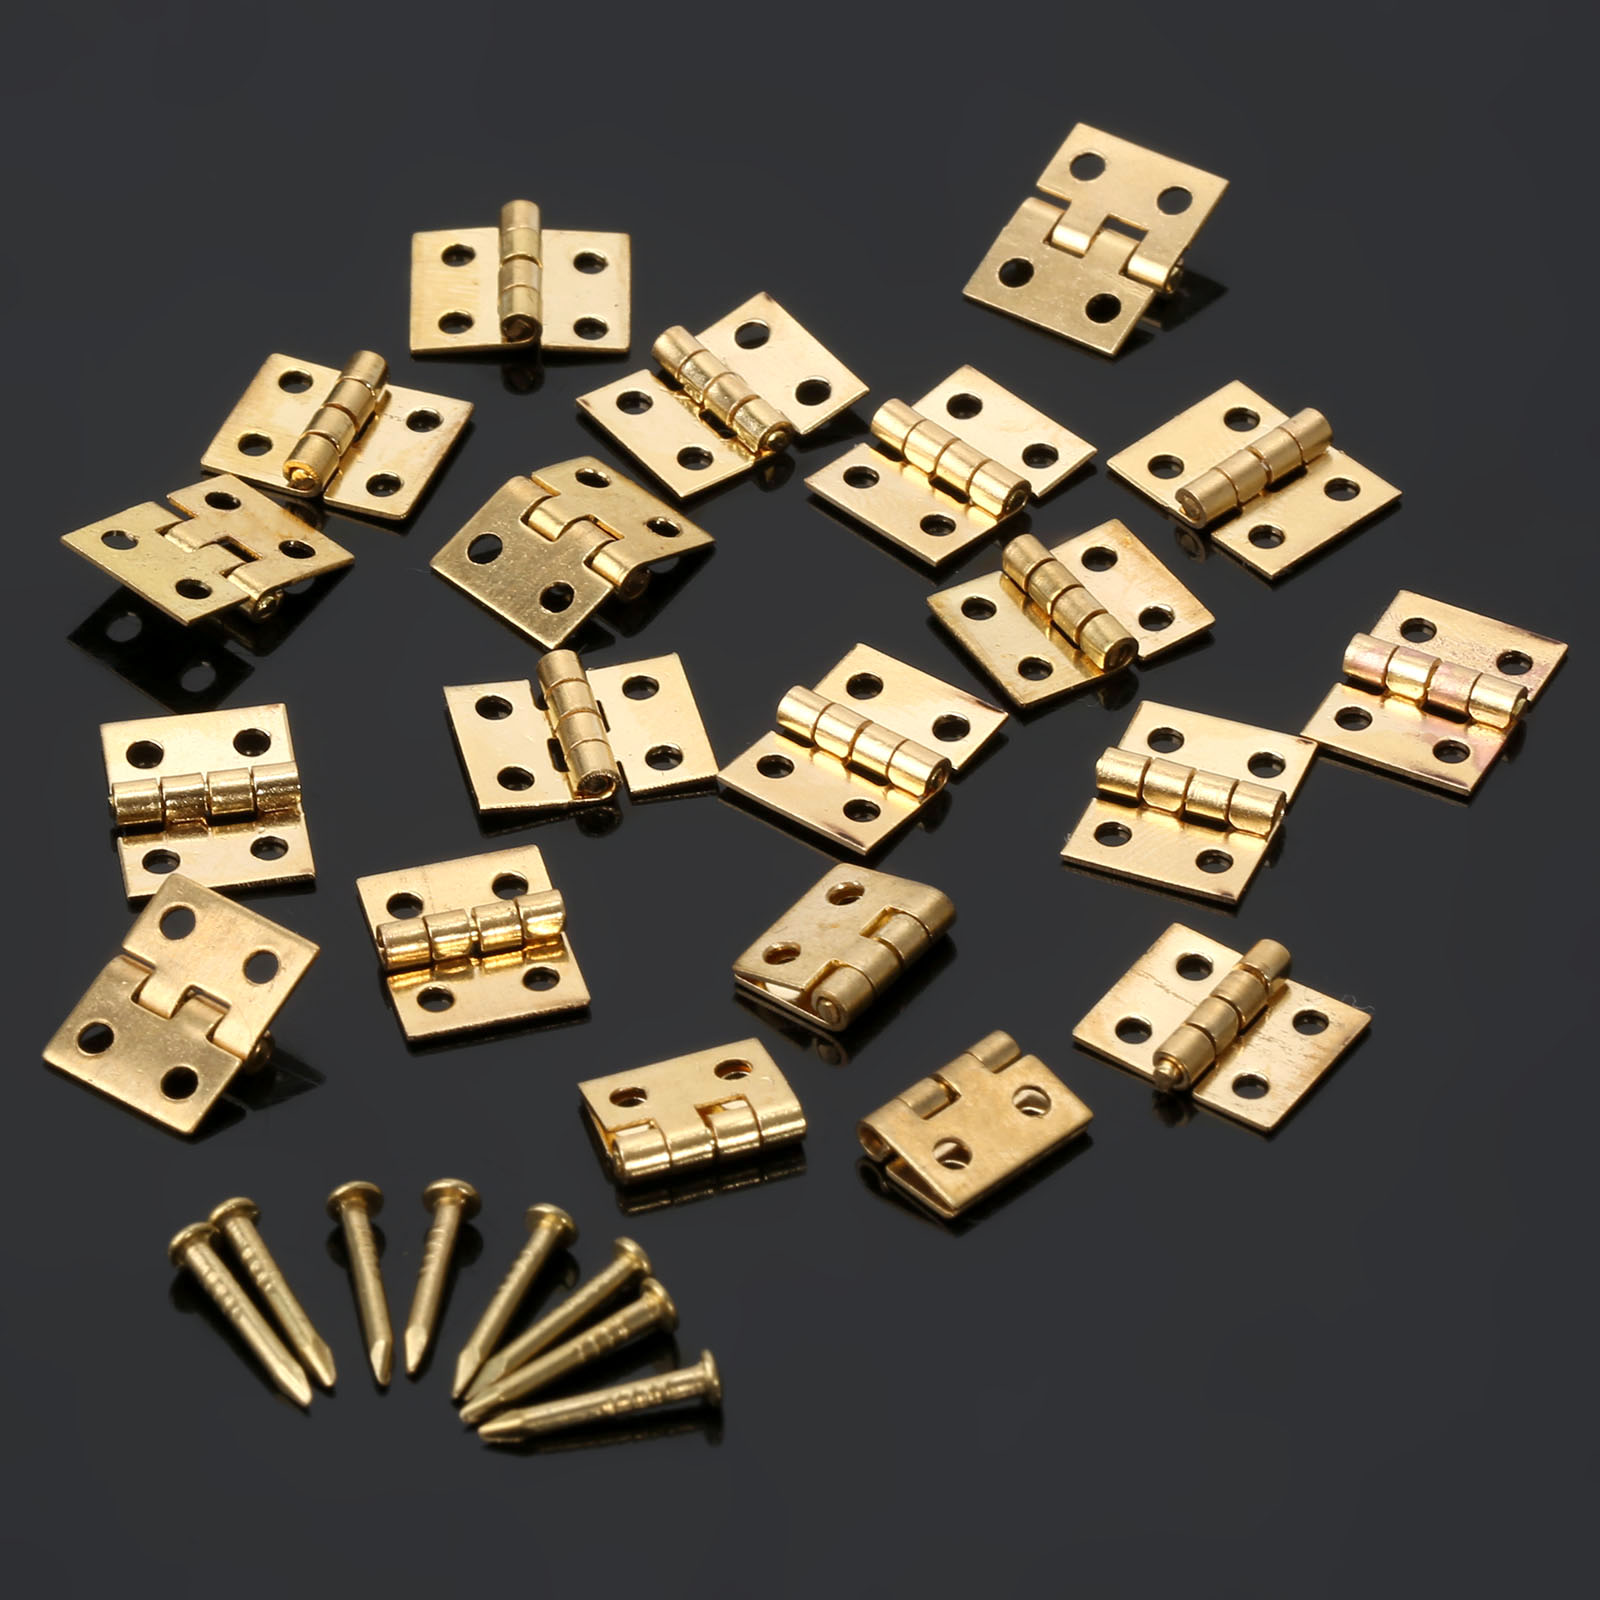 20pcs Brass Plated Mini Hinge Small Decorative Jewelry